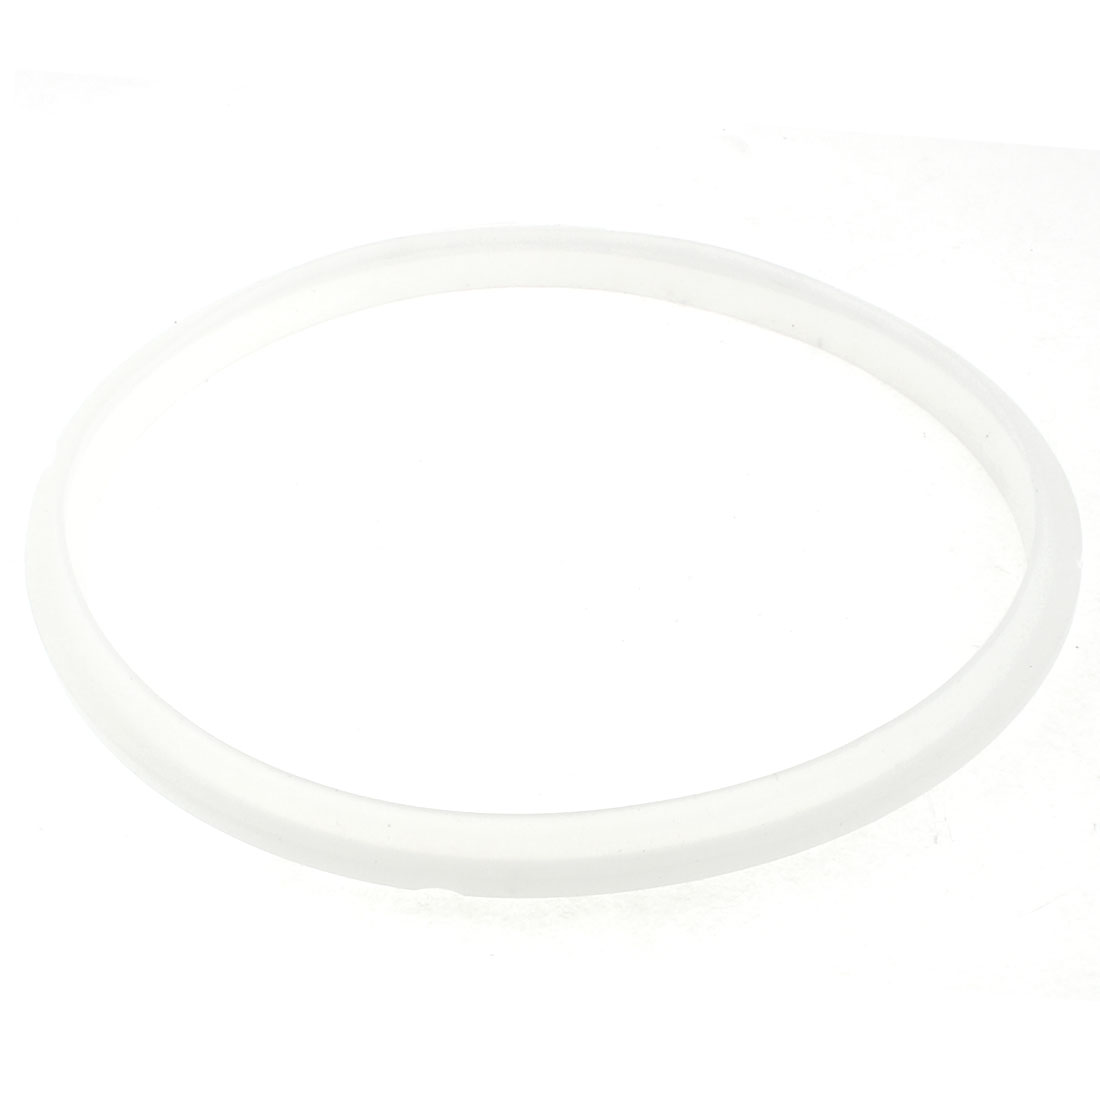 Home Silicone Sealing Ring Gasket Replacement for 5-6L Pressure Cooker White